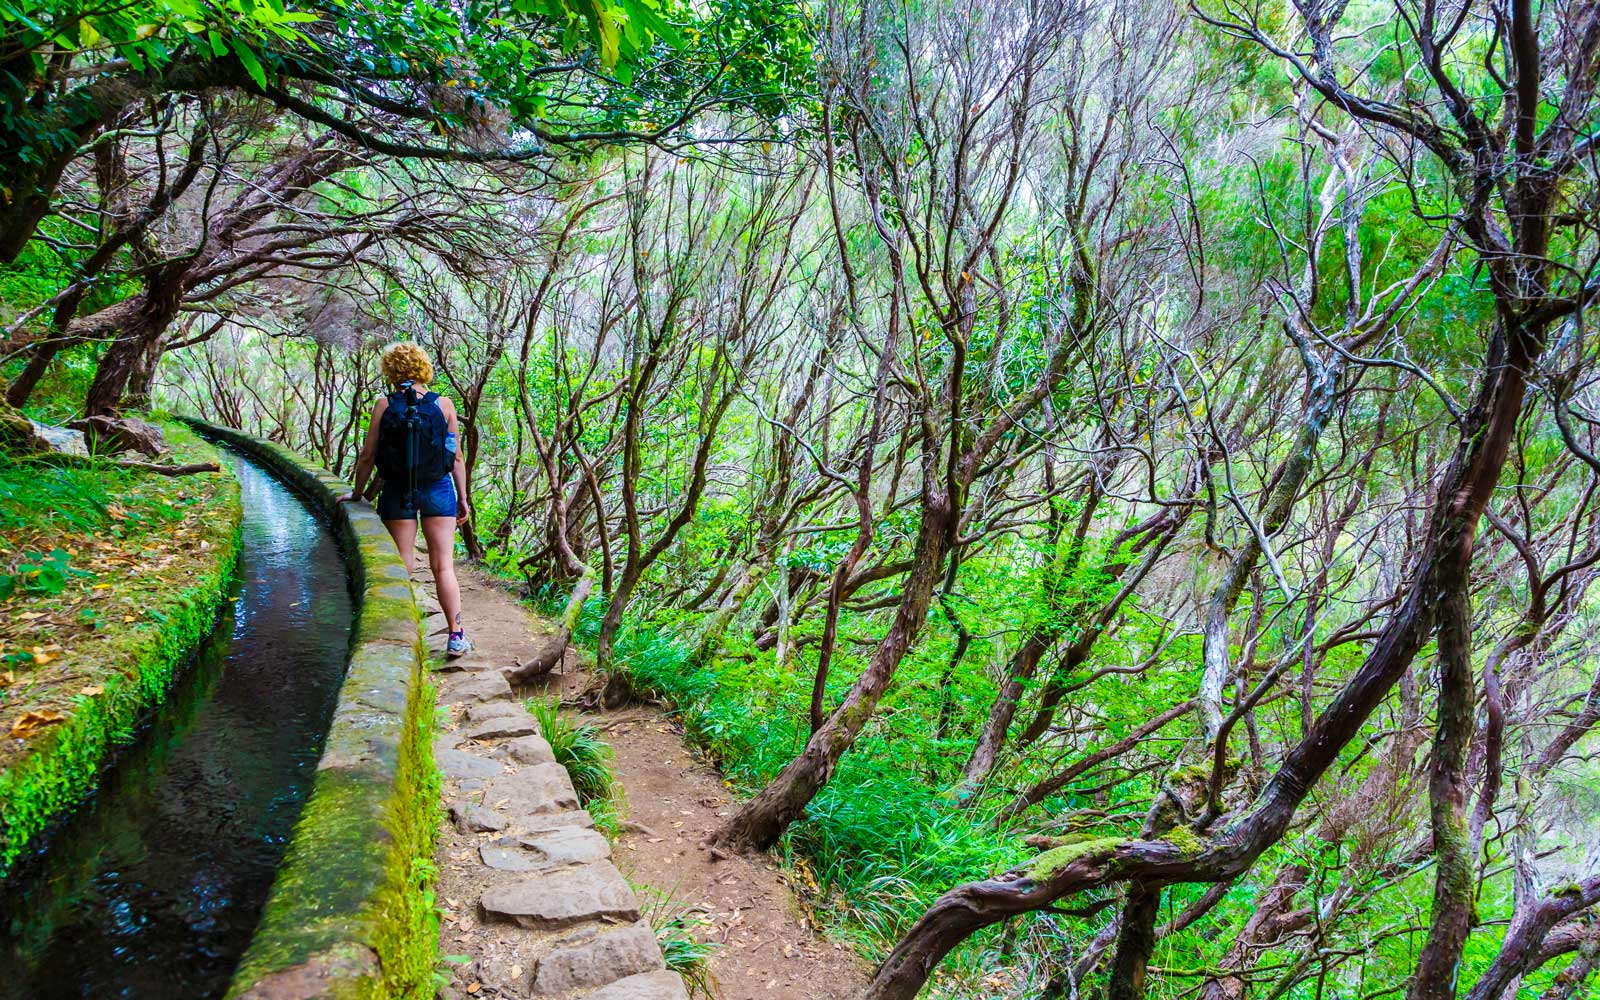 Woman hiking in a laurisilva forest on the Levada das 25 Fontes route in Madeira, Portugal